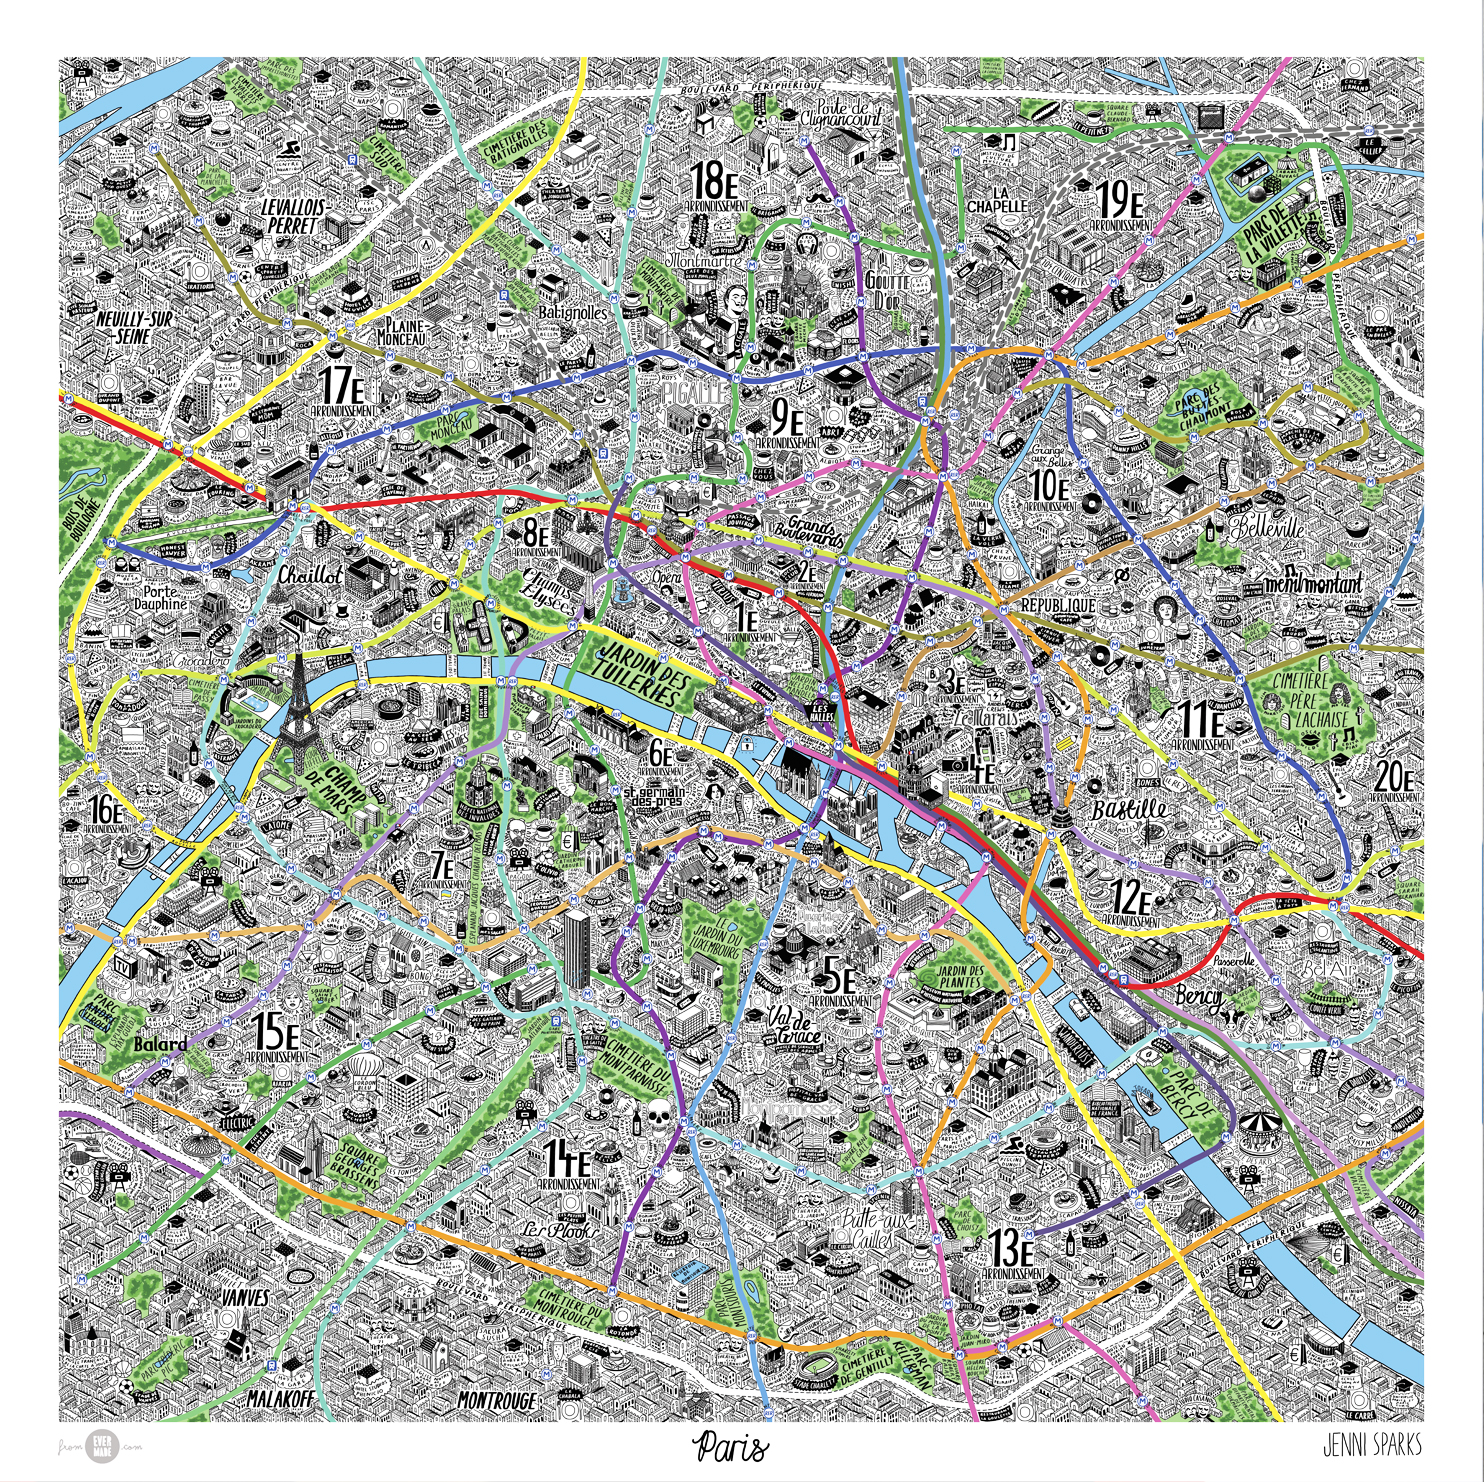 hand drawn map of paris - Jenni Sparks on photography of paris, high resolution map of paris, simplified map of paris, fun map of paris, highlighted map of paris, religion map of paris, english map of paris, watercolor of paris, large map of paris, travel map of paris, white map of paris, detailed street map of paris, printable map of paris, outlined map of paris, antique map of paris, color map of paris, illustration of paris, interactive map of paris, history map of paris, sports map of paris,